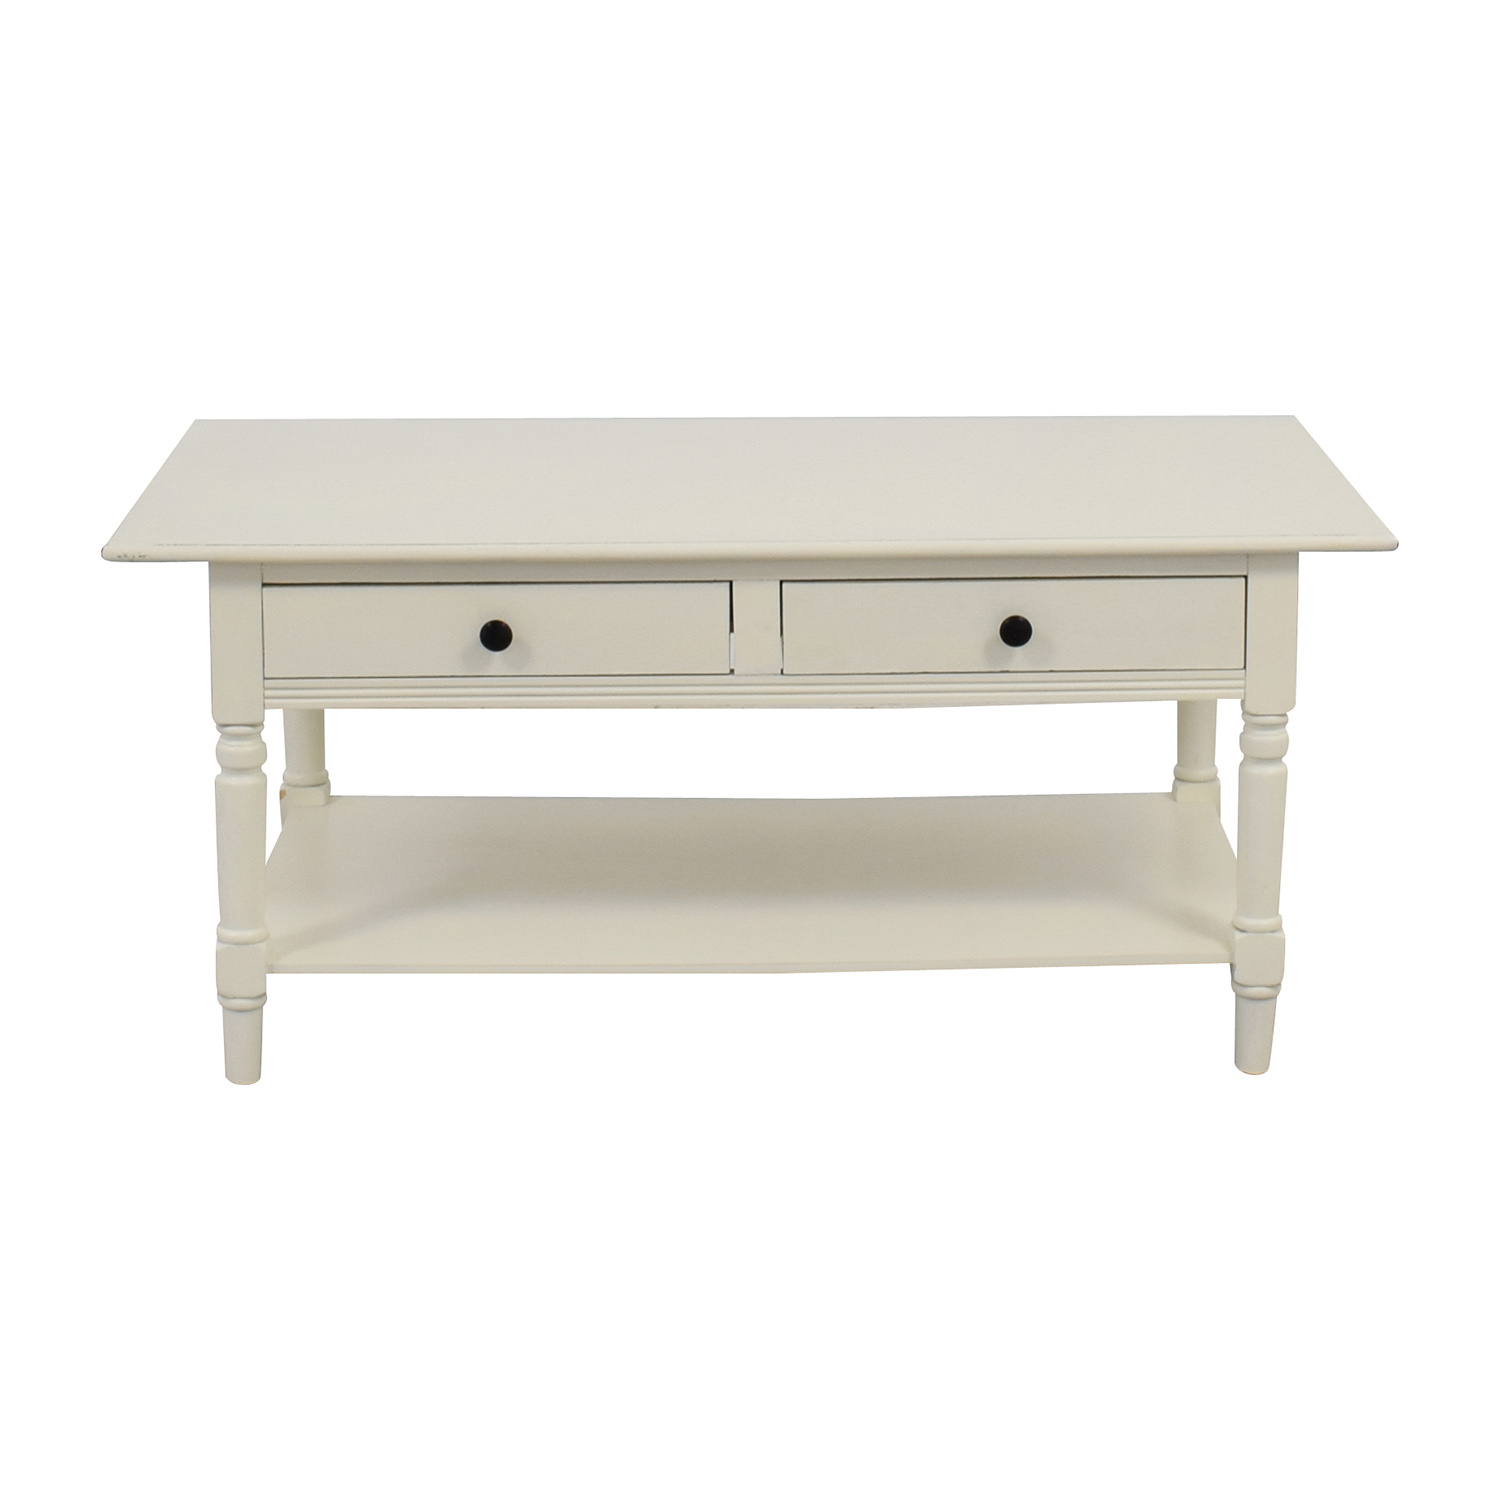 Macys Macys White Two-Drawer Coffee Table Tables